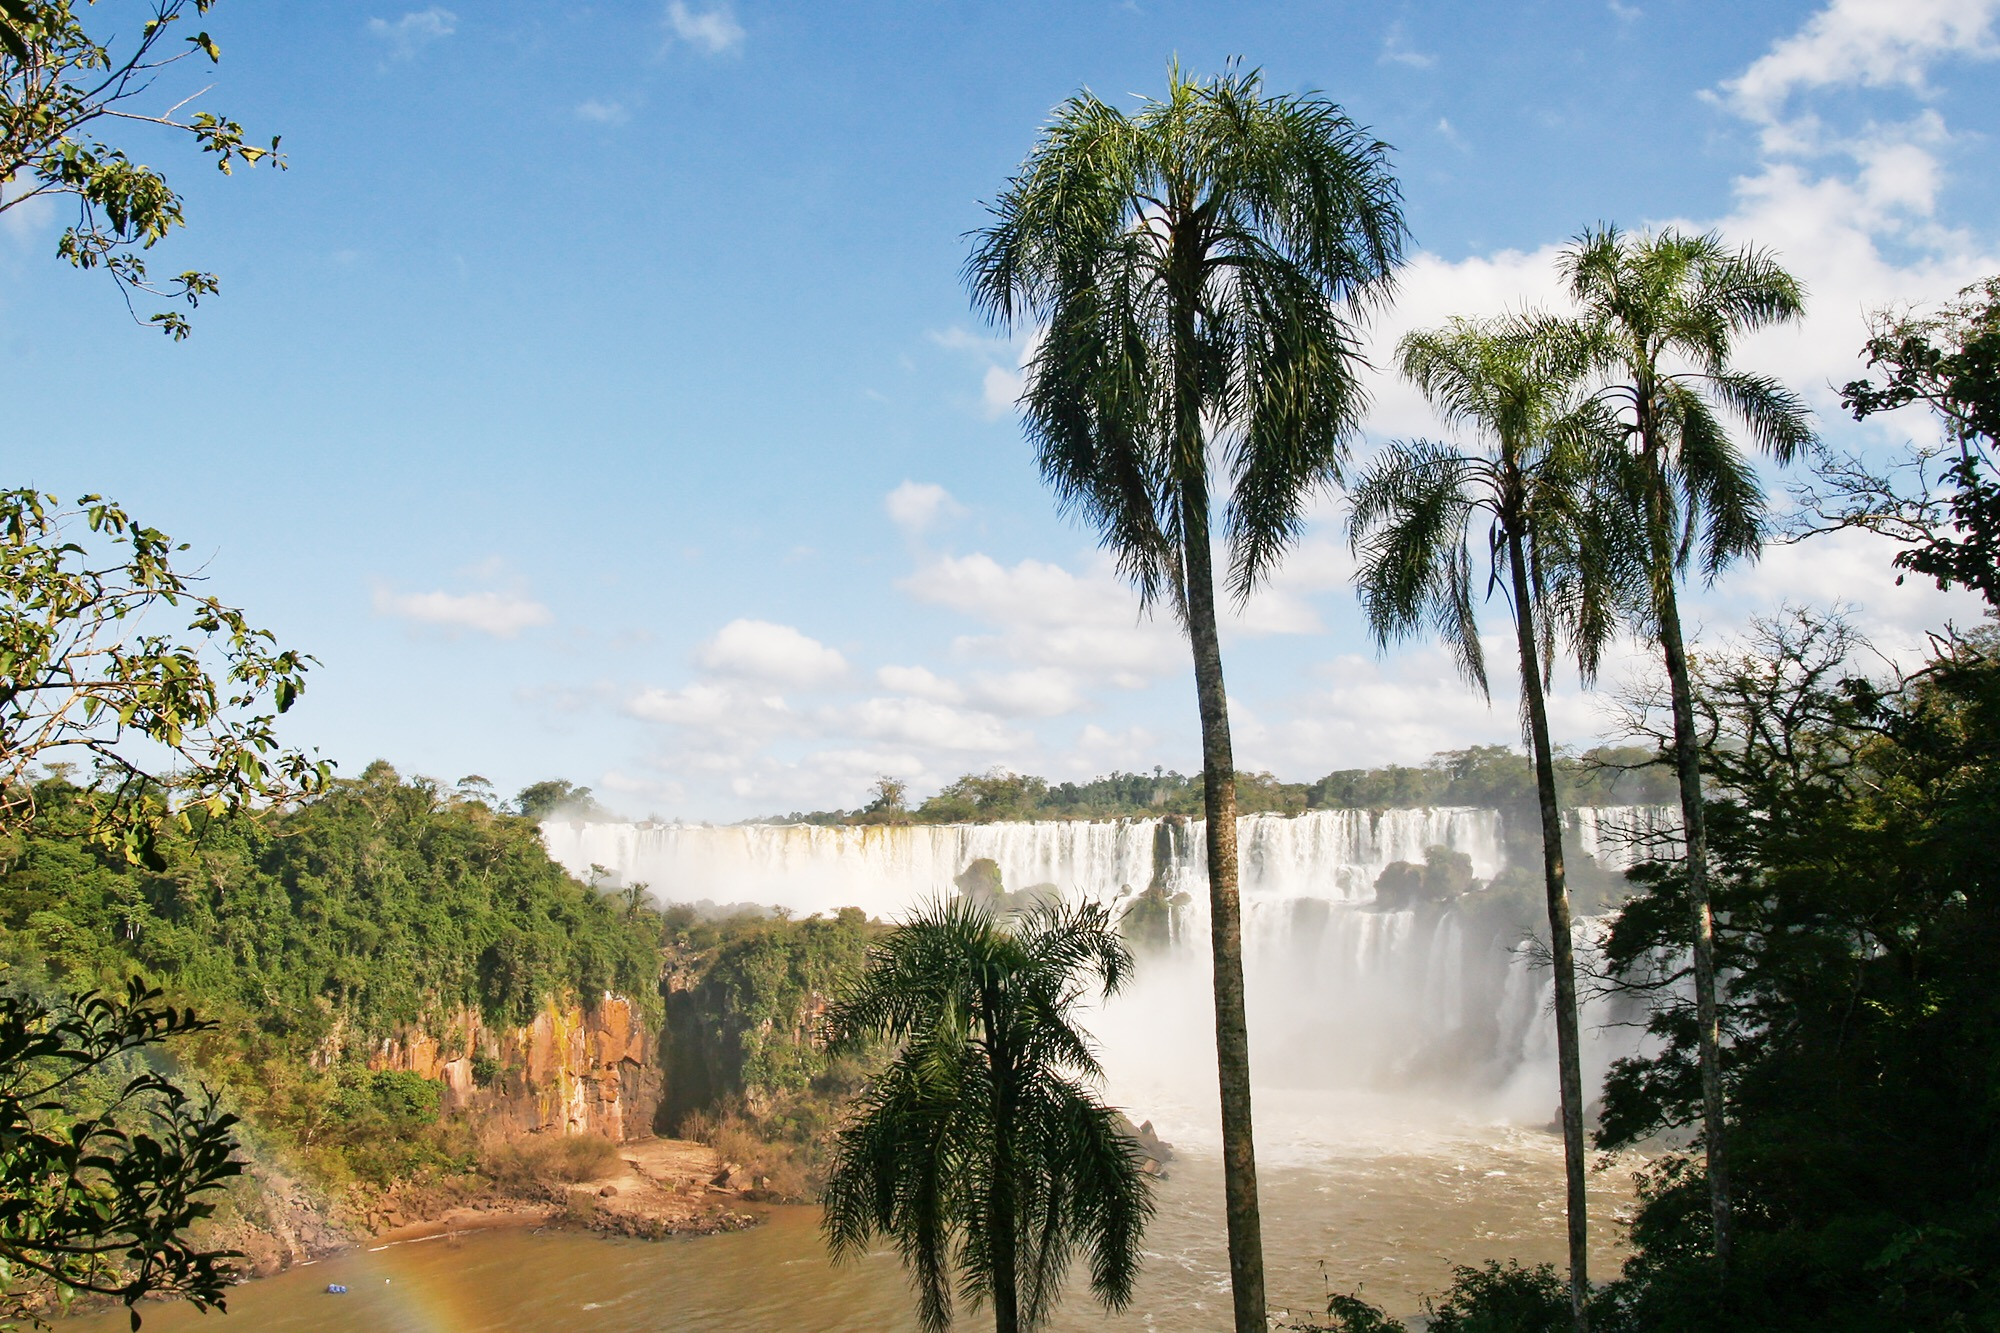 Second largest waterfalls in the world